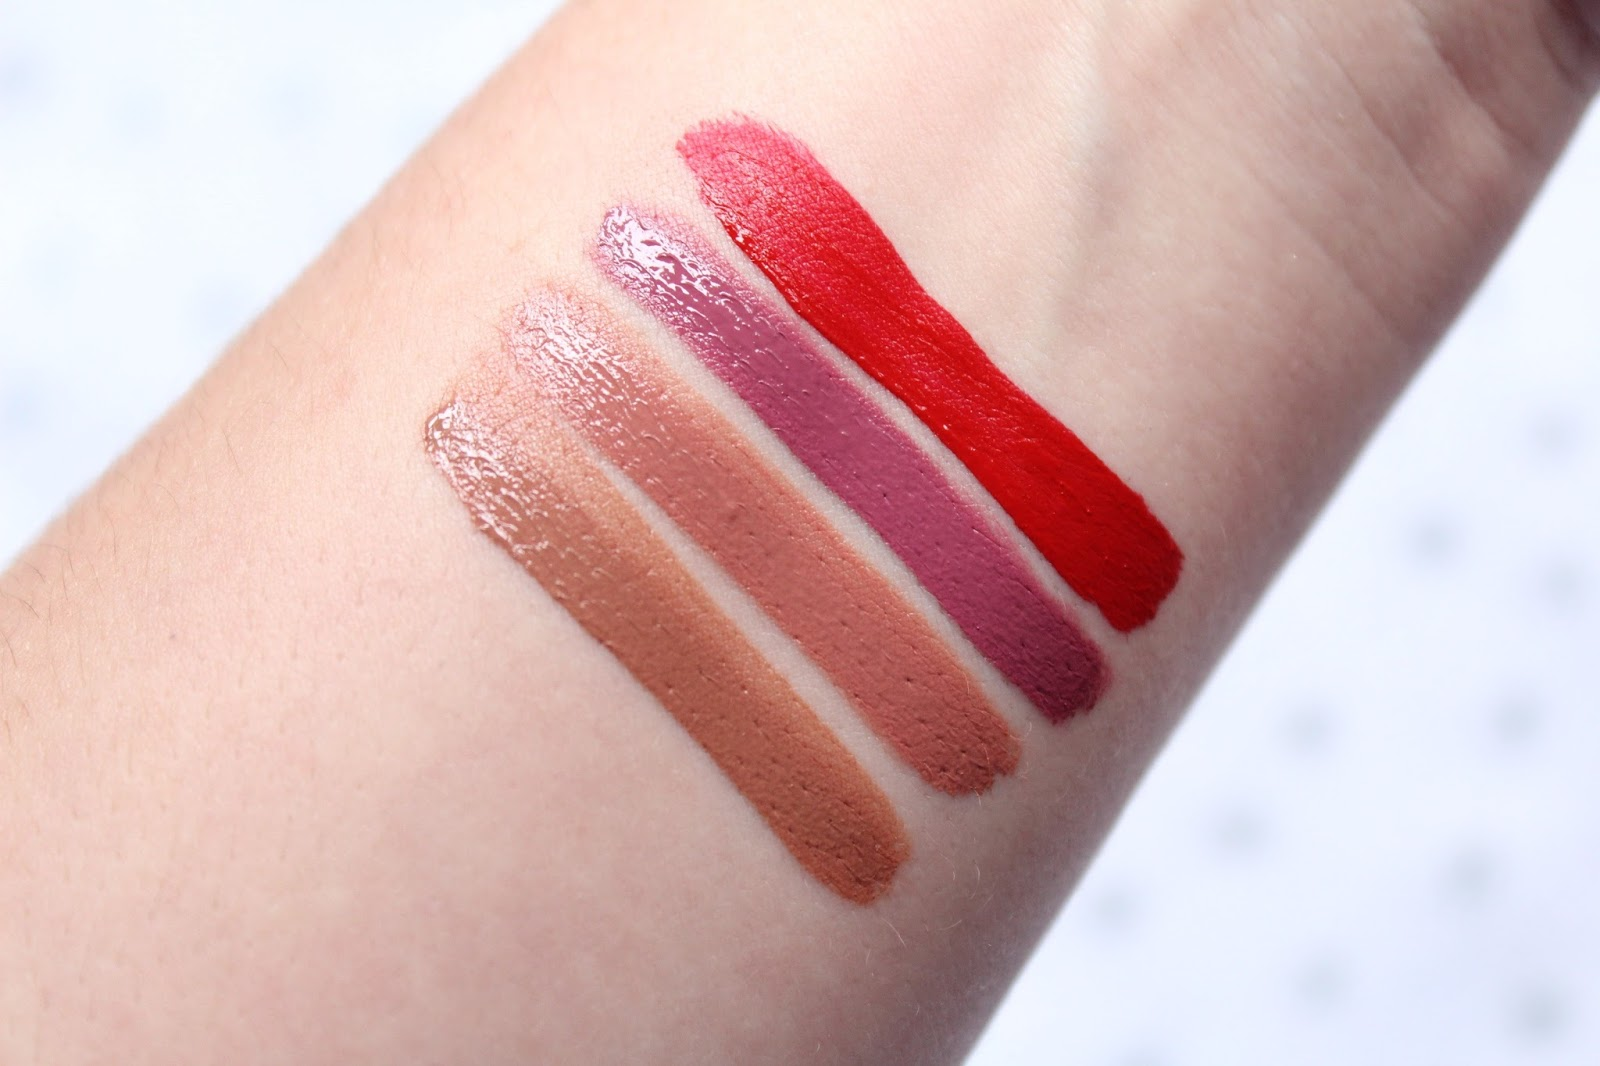 Too Faced Merry Kissmas Gift Set Swatched